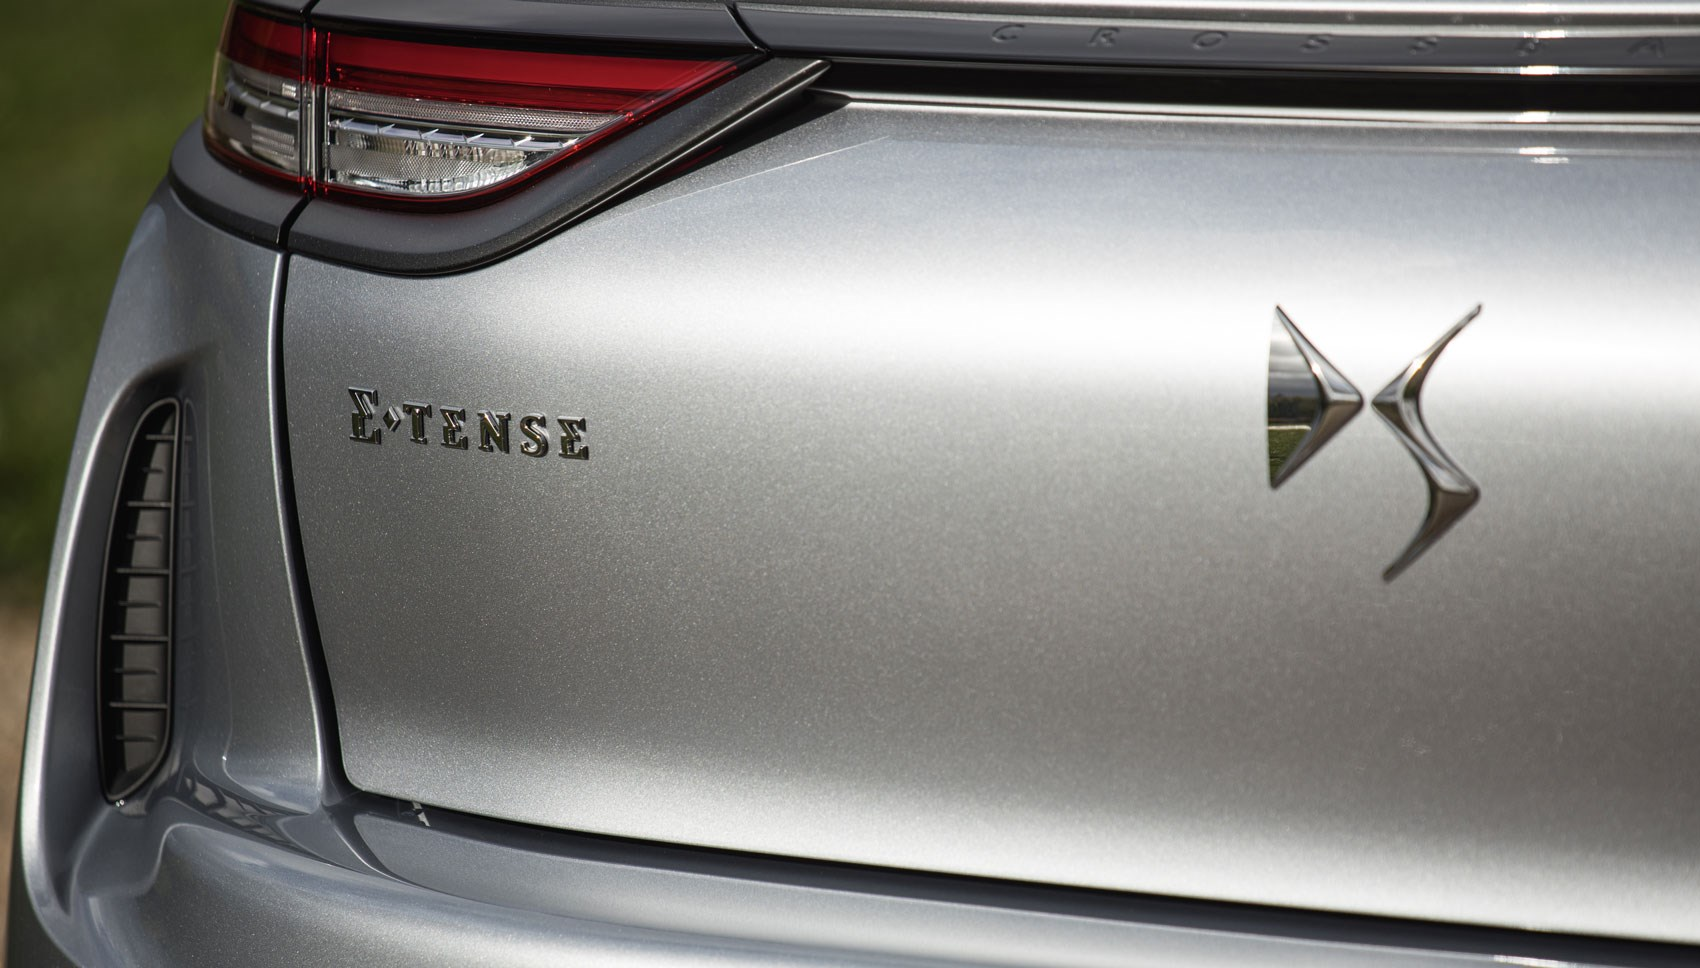 DS3 rear badge